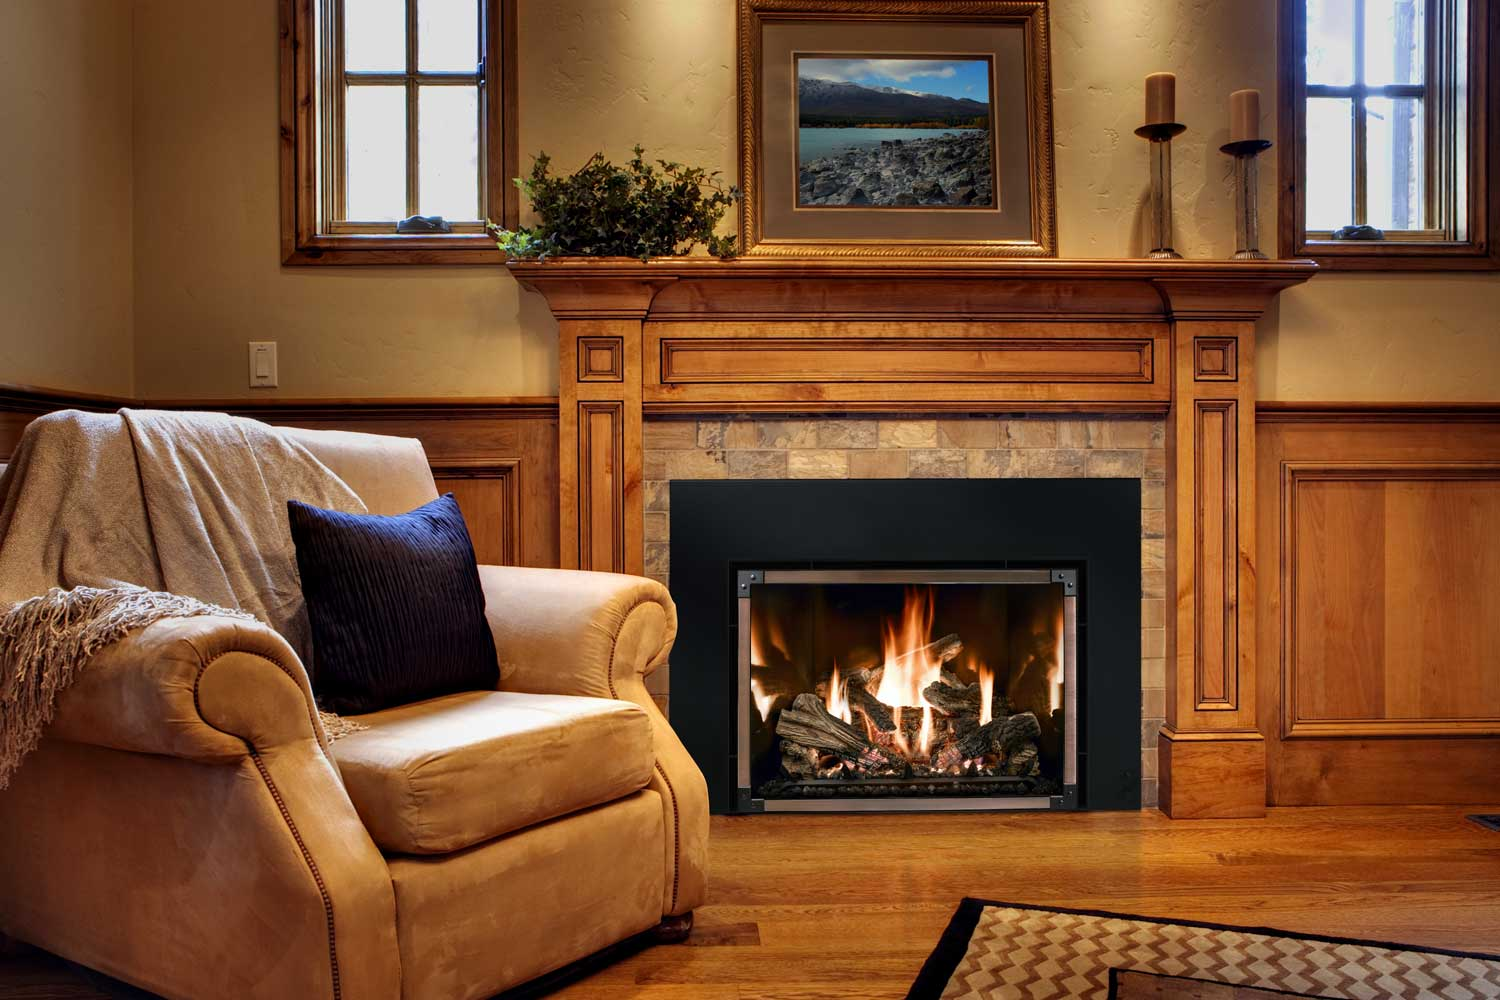 Renovating Old Fireplaces Adds Beauty to a Room